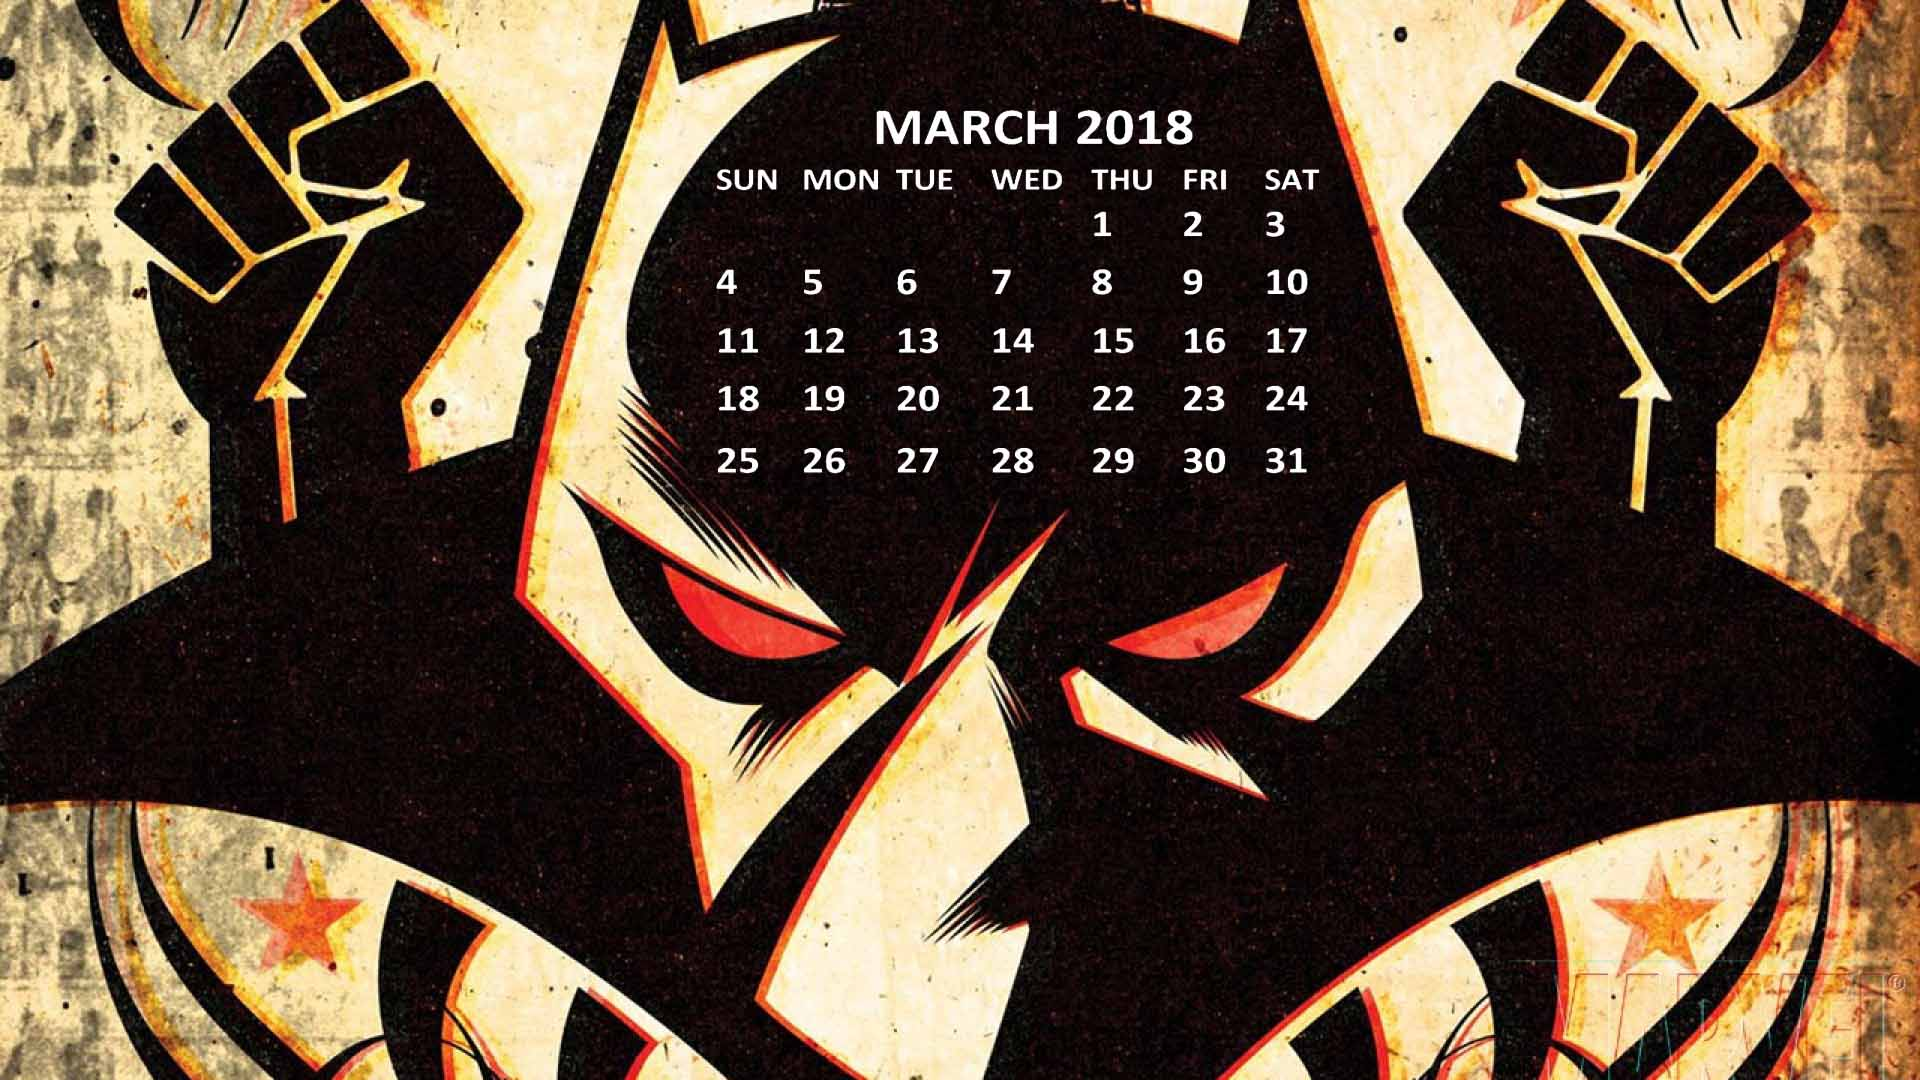 Black Panther 2018 Calendar Wallpapers CalendarBuzz 1920x1080